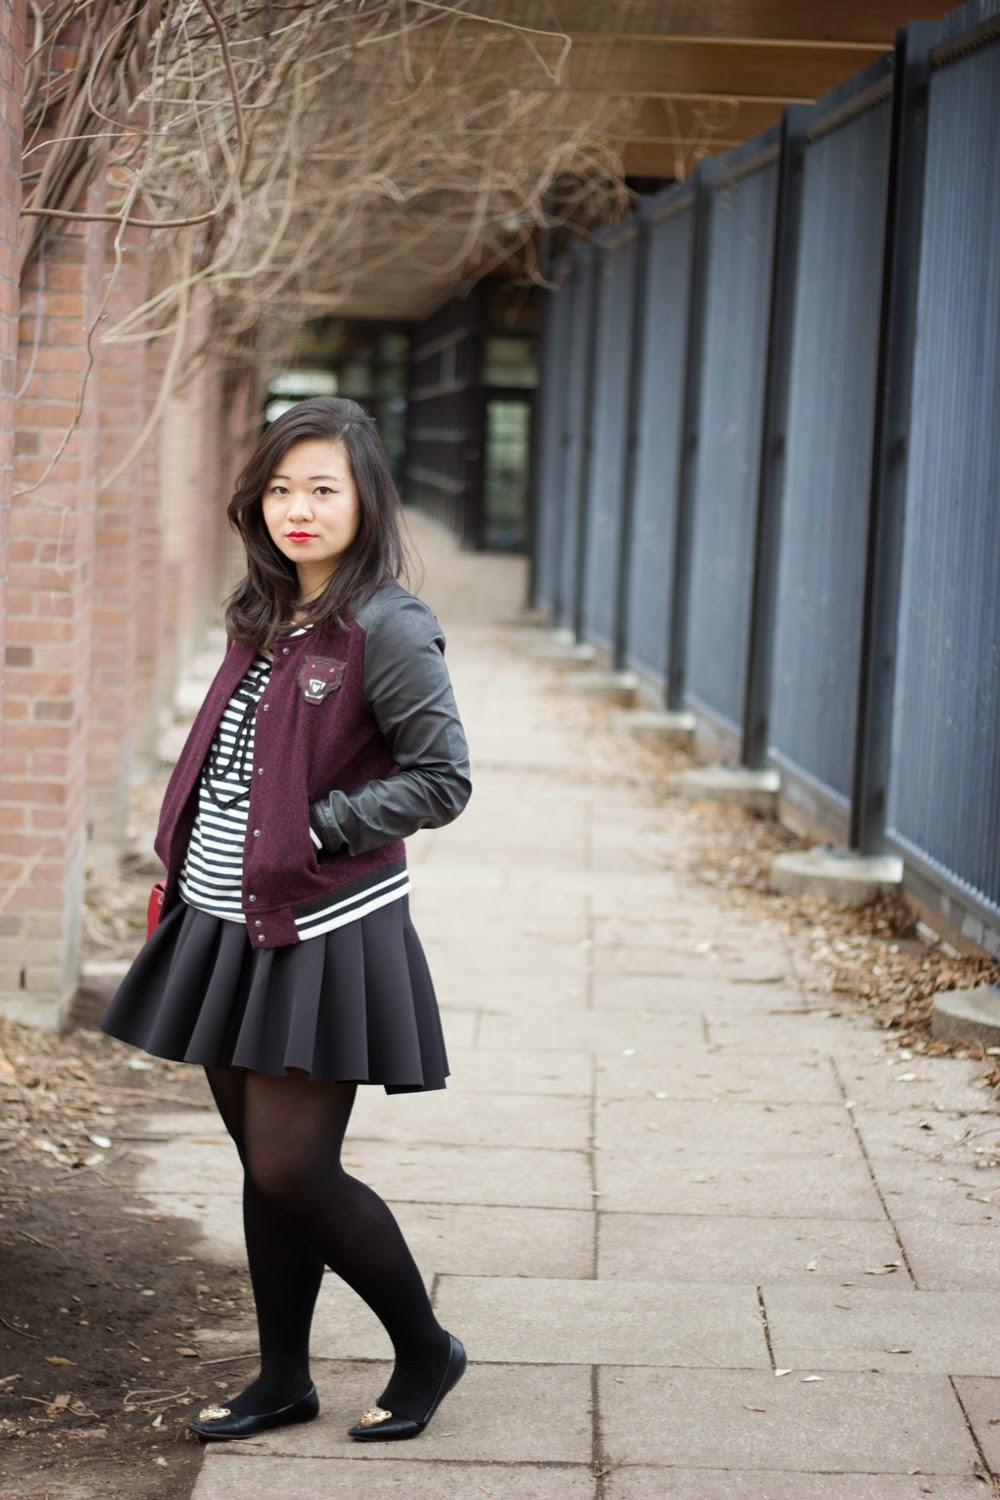 Burgundy-baseball-varsity-jacket, puffy-skater-skirt, Spring-Casual-Look, Street-Style